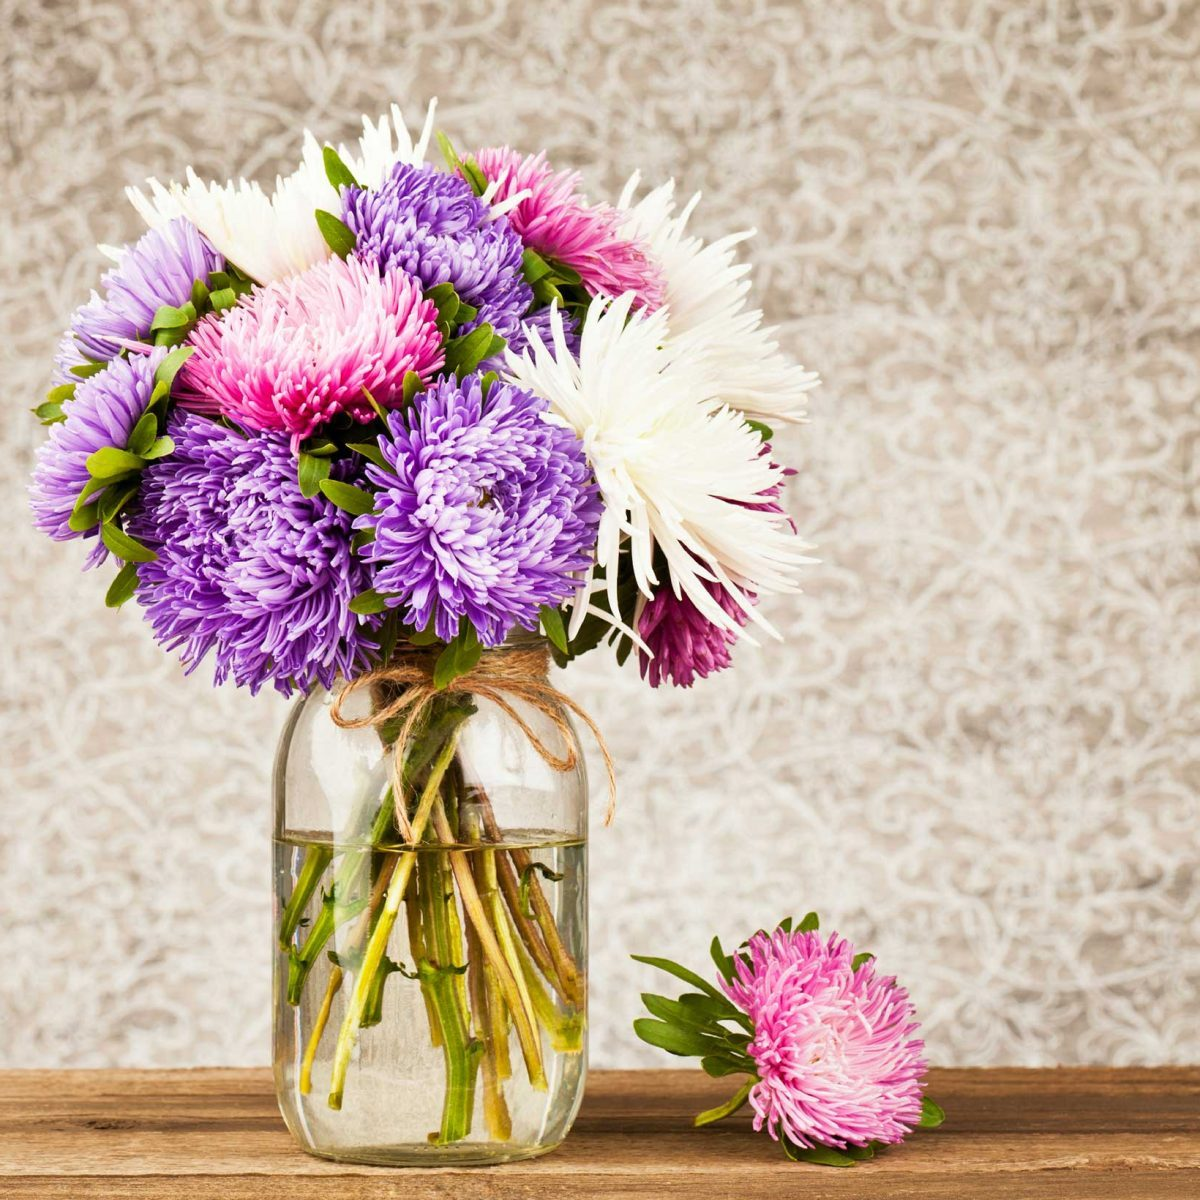 796ca0e5c338 26 Things Your Florist Won't Tell You | Reader's Digest